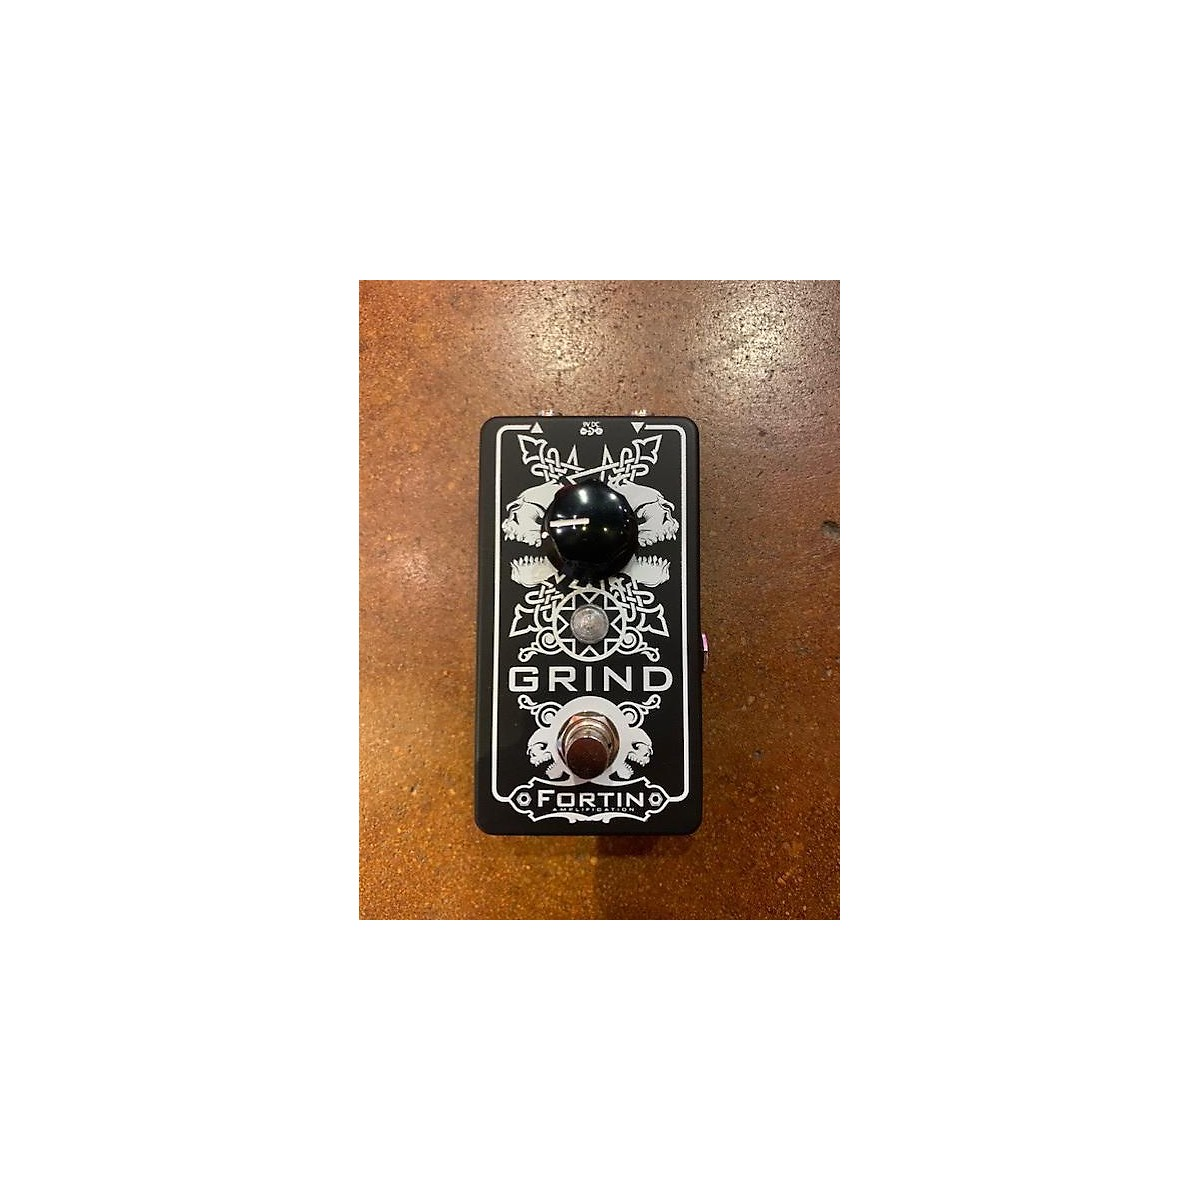 In Store Used Used FORTIN GRIND Effect Pedal